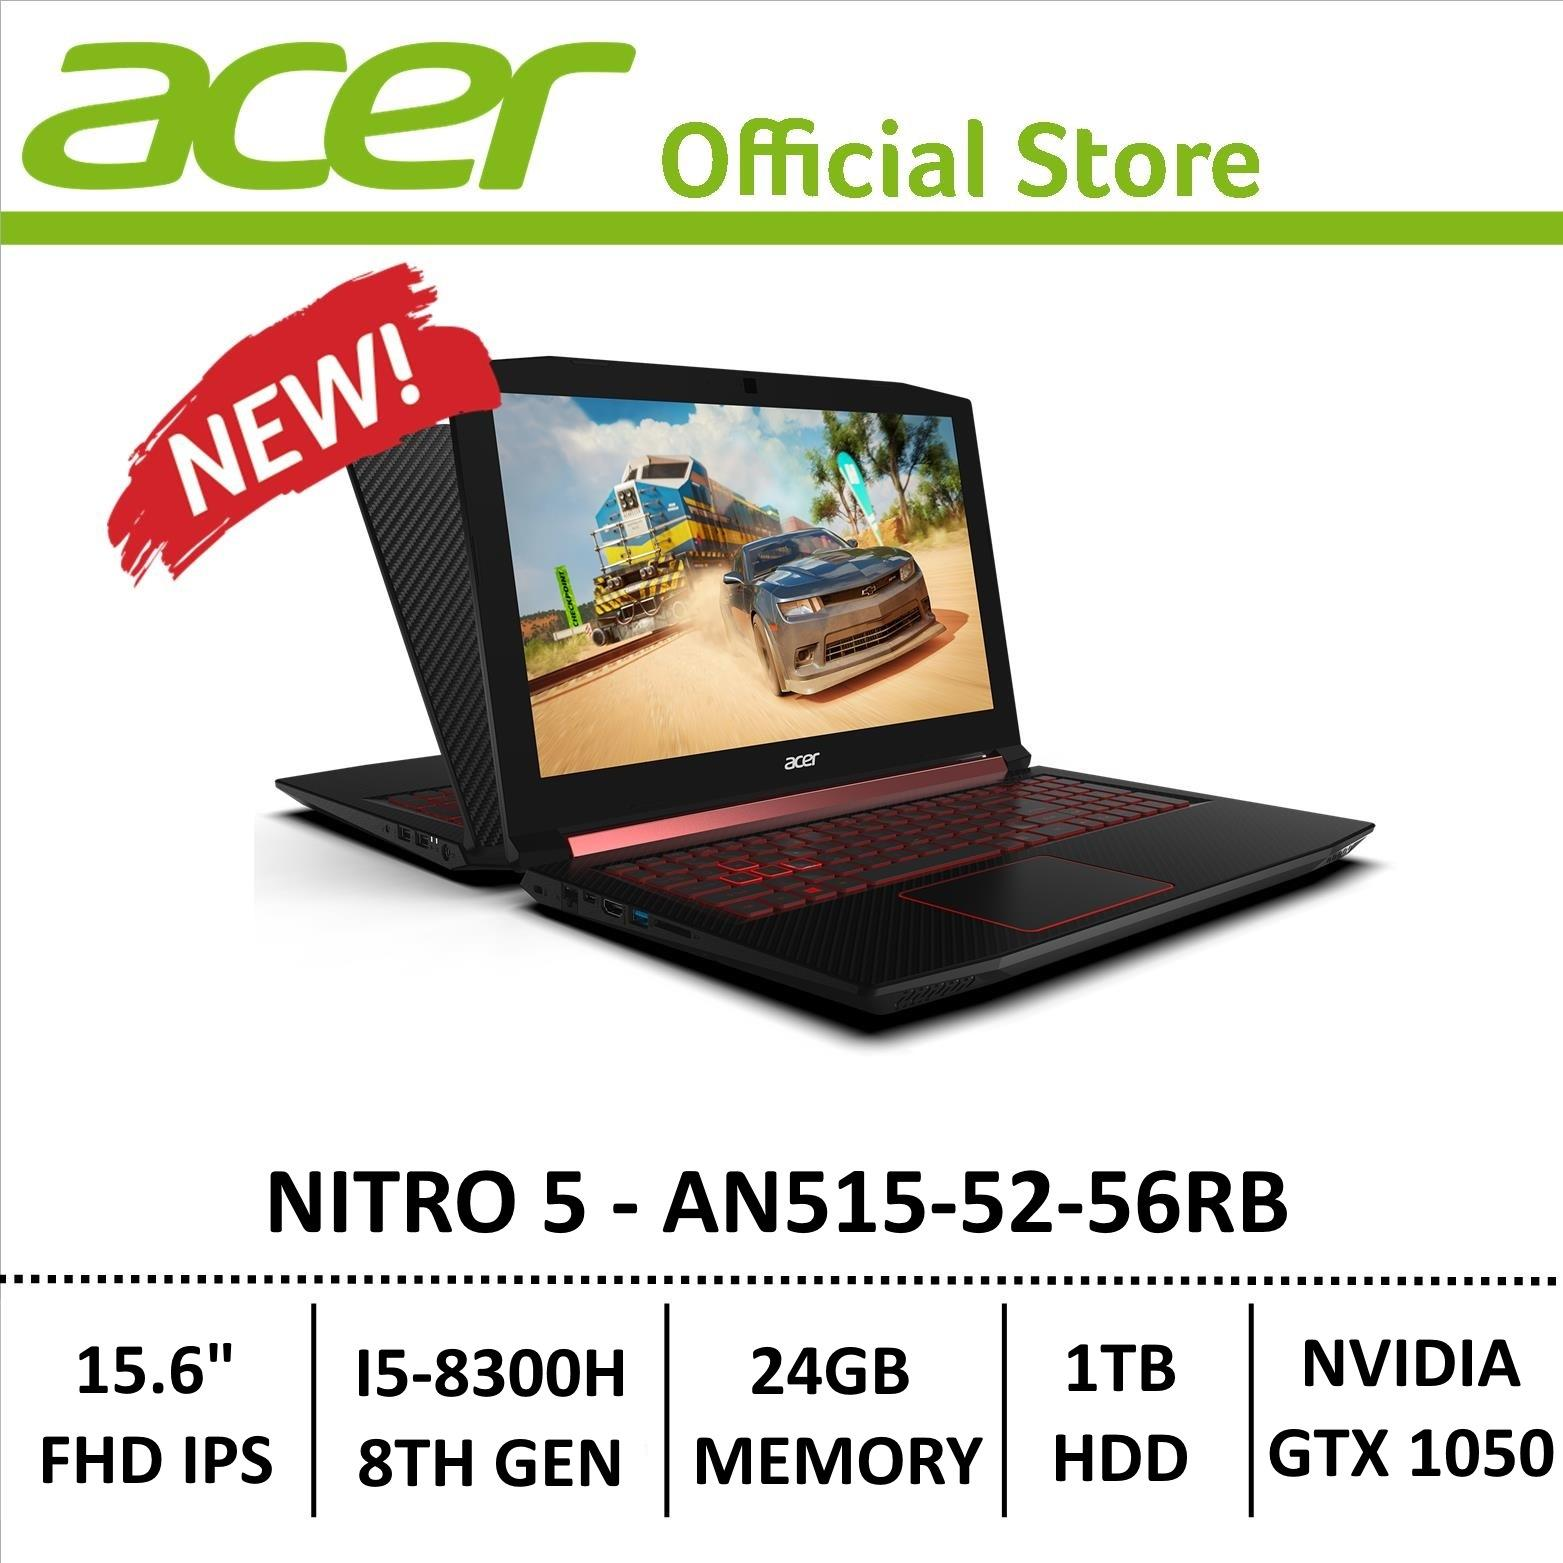 Laptop Günstig Acer Nitro 5 An515 52 56rb Gaming Laptop 8th Generation Core I5 Processor With Gtx 1050 Graphics Optane Memory